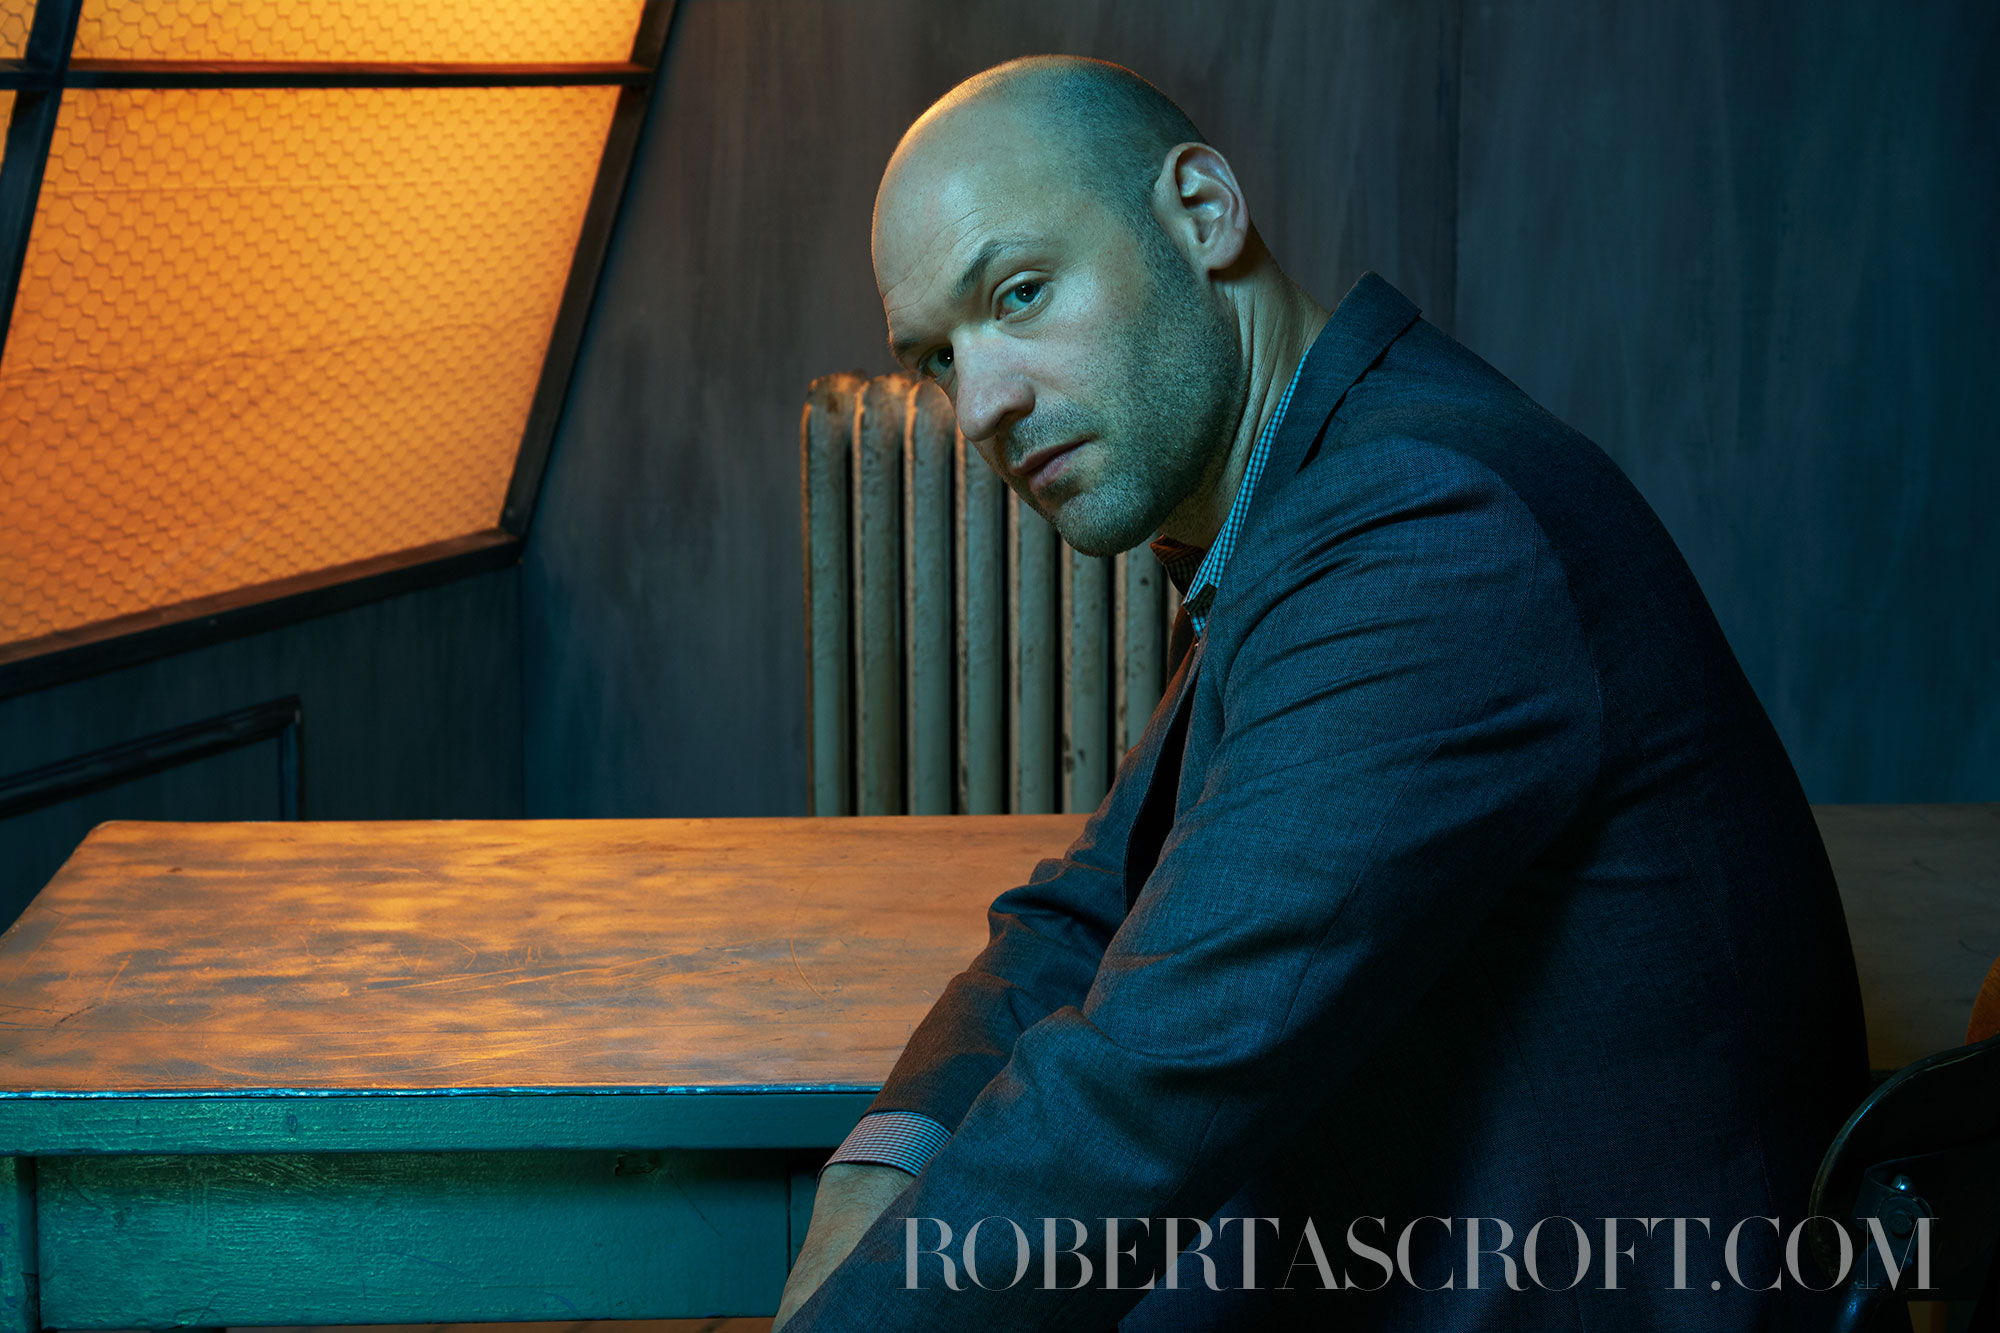 COREY_STOLL-BY-ROBERT-ASCROFT